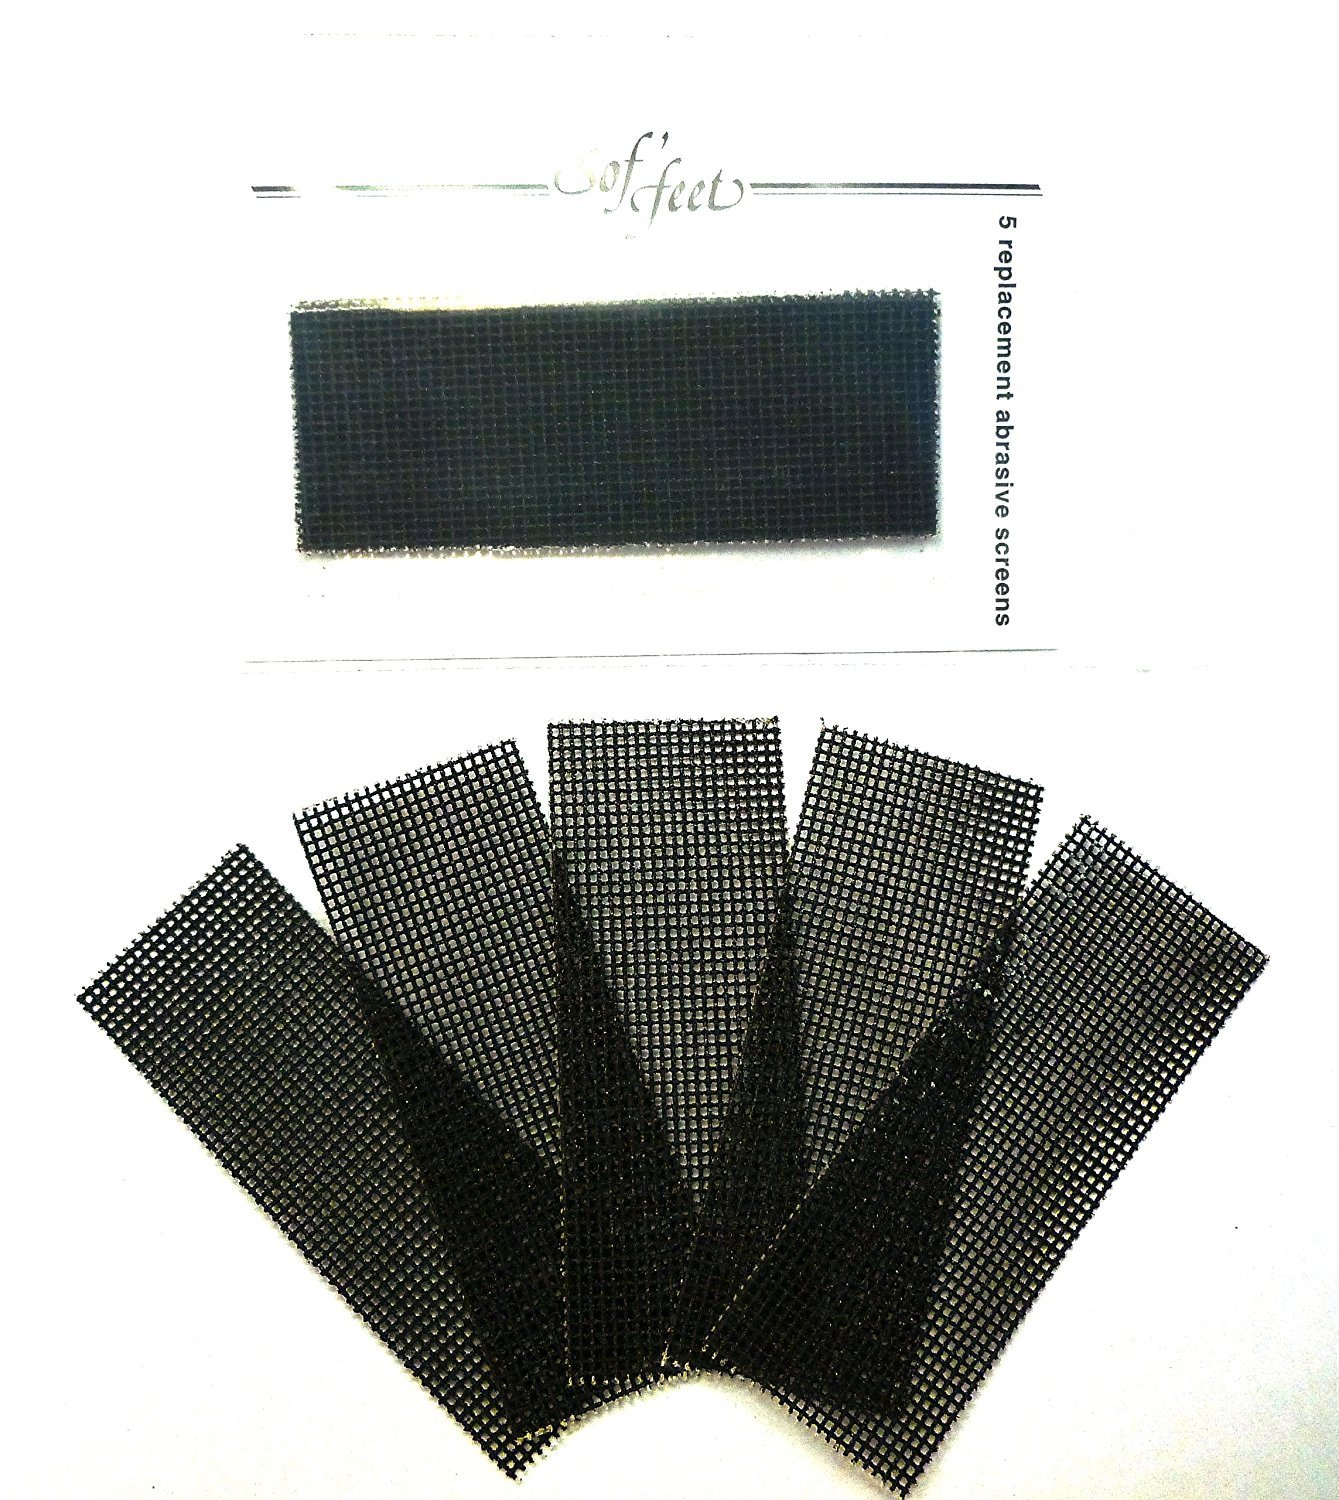 Sof'feet Replacement Screens for Sof'feet Callus Remover Tool